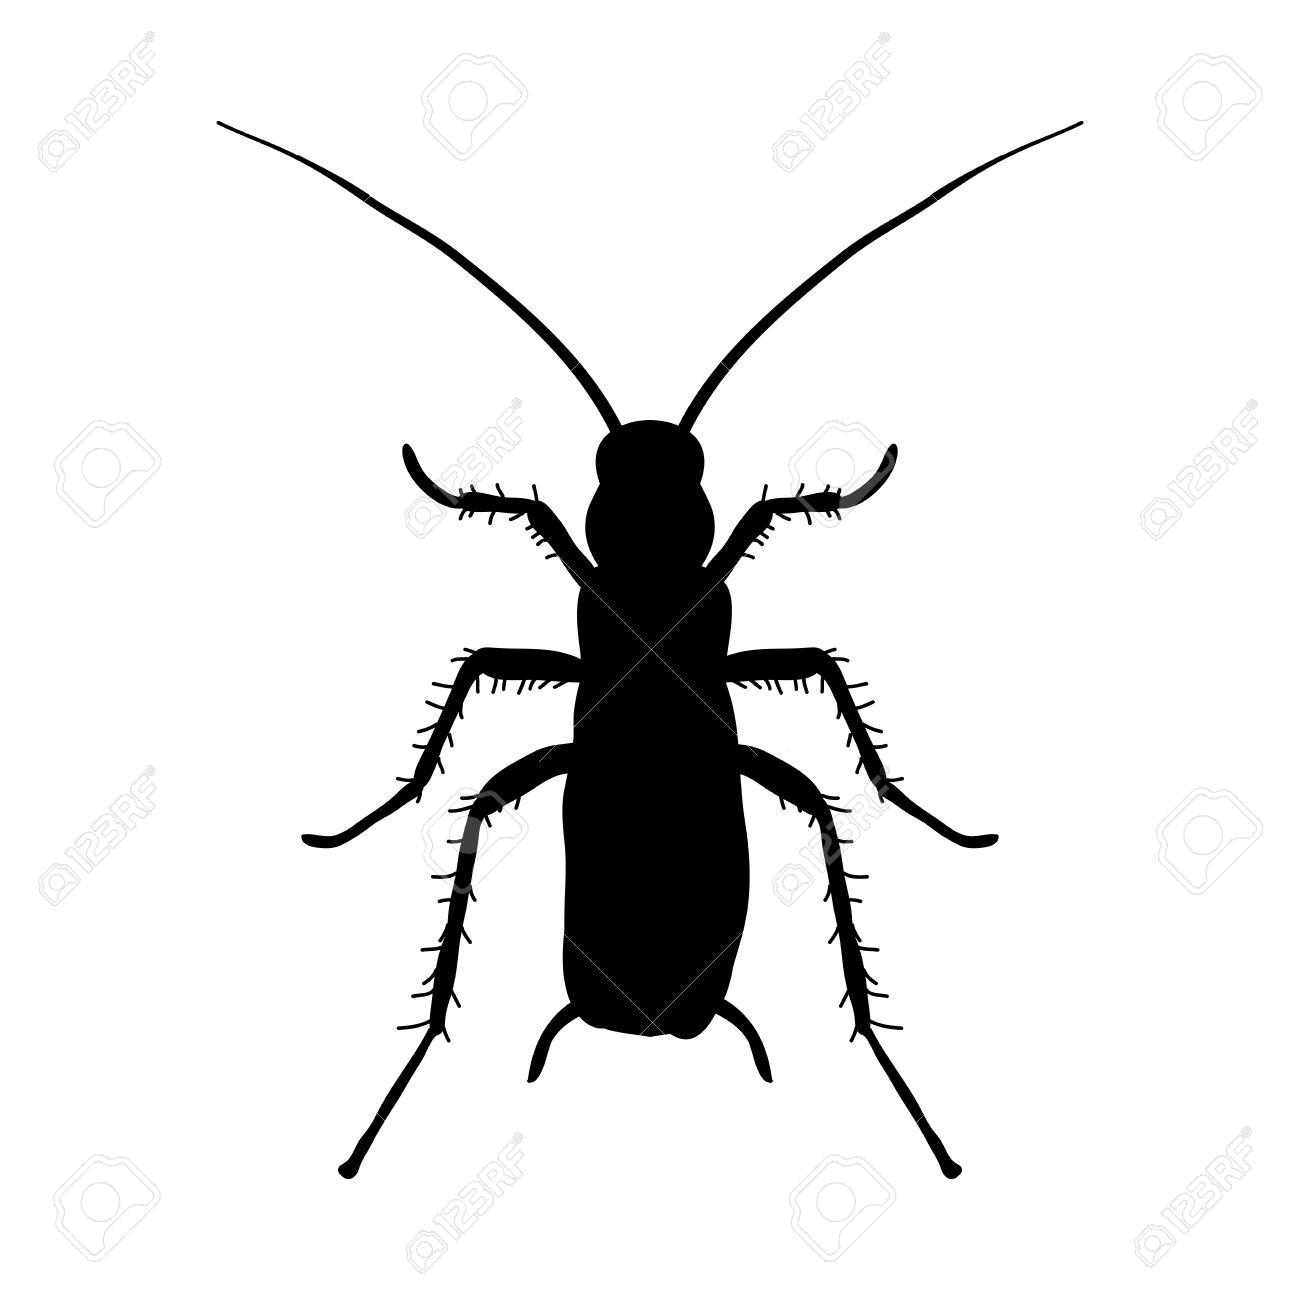 Silhouette Of Cockroach. Blattella Germanica. Cockroach. Sketch ...